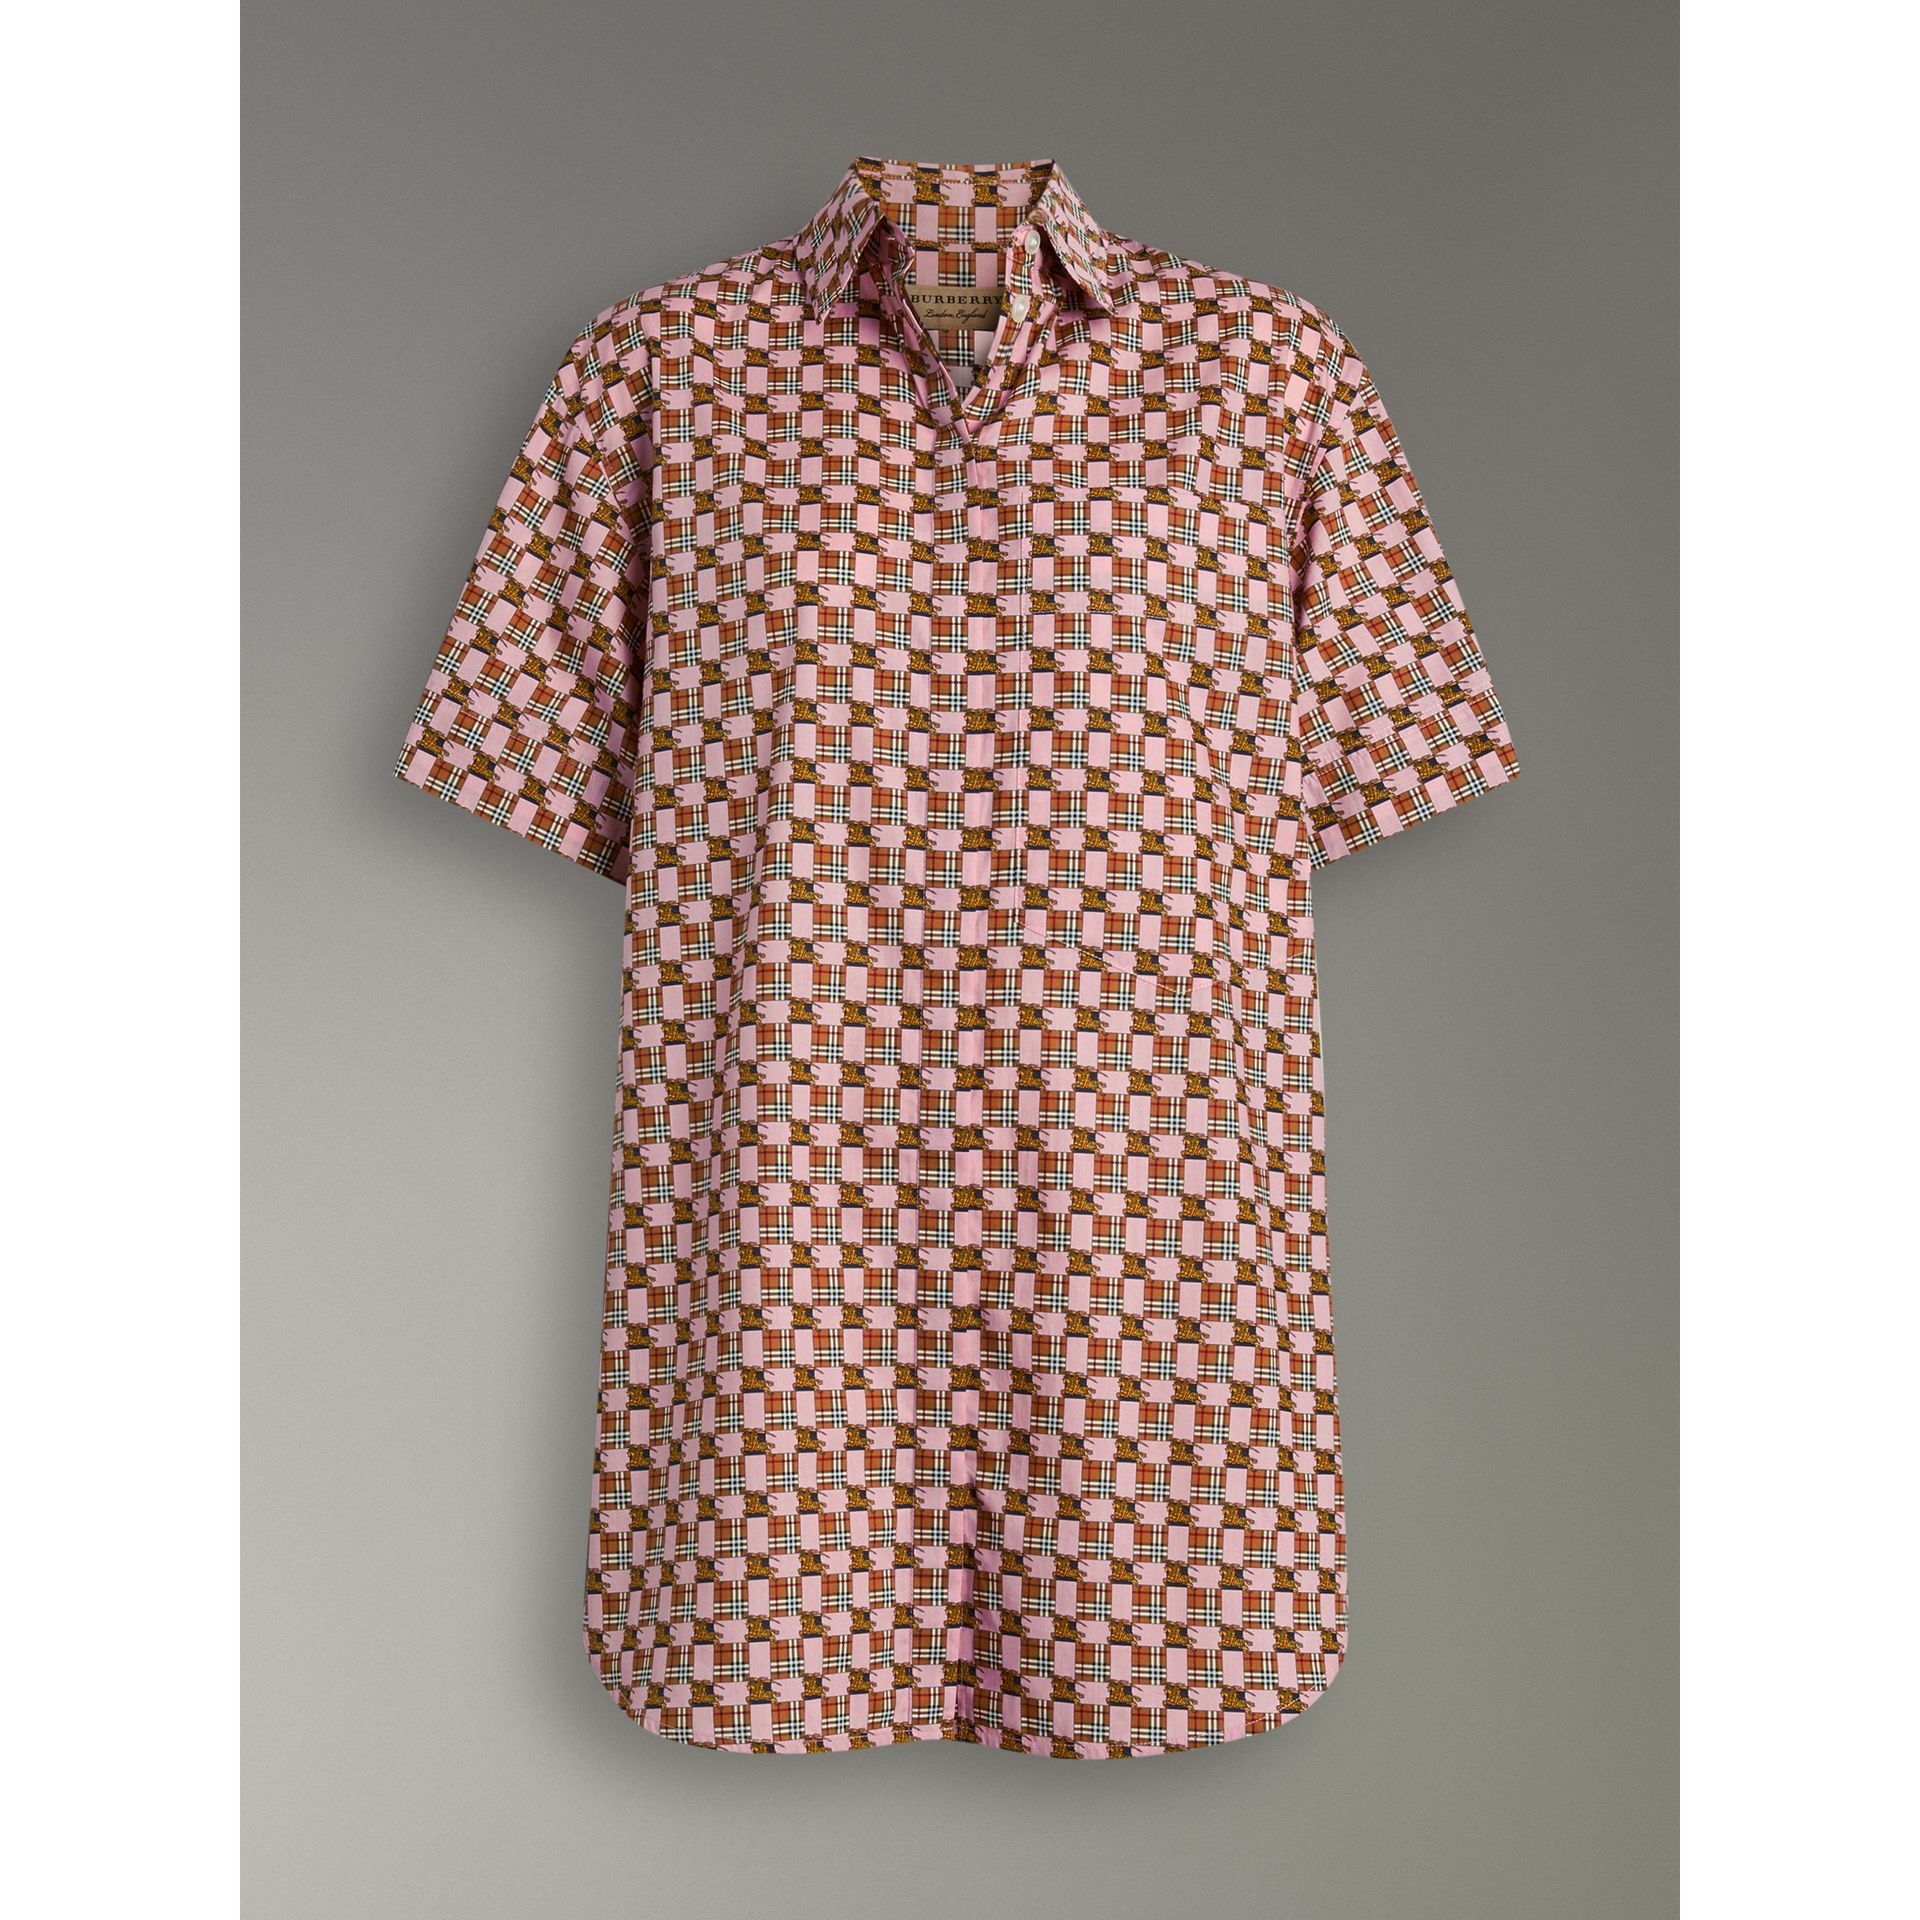 Short-sleeve Tiled Archive Print Shirt in Pink - Women | Burberry - gallery image 3